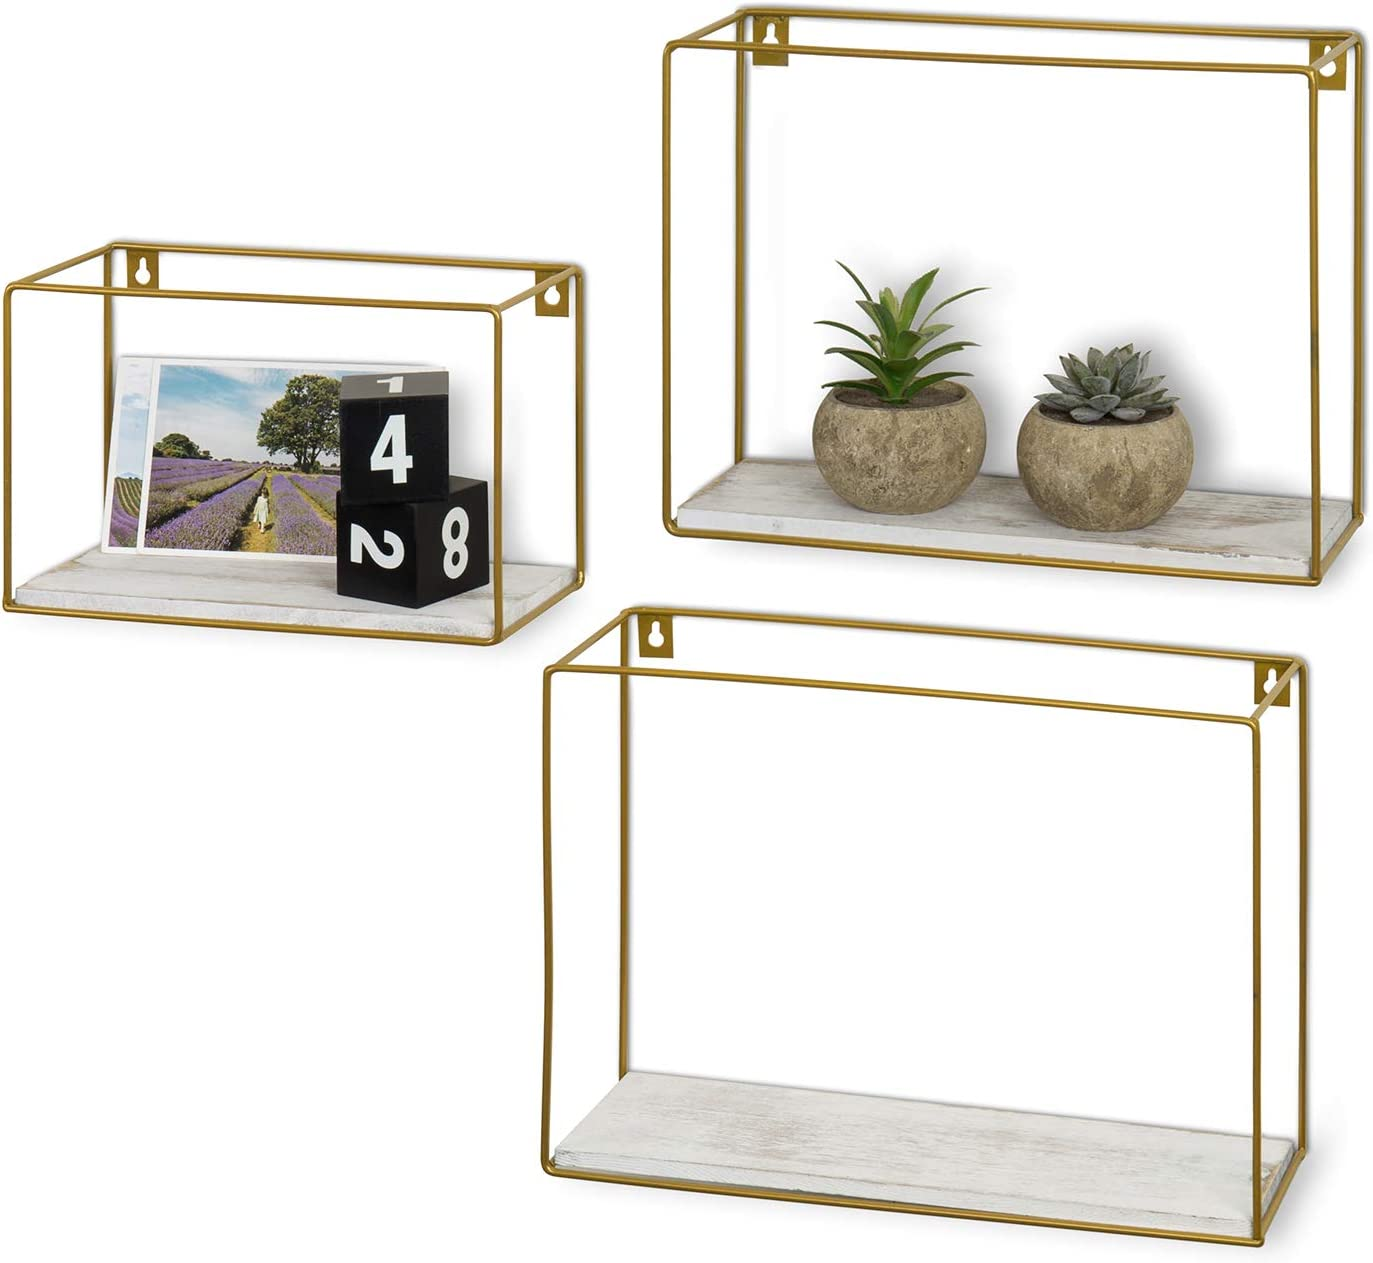 MyGift Modern Brass Metal Wire & Whitewashed Wood Wall Mounted Shadow Boxes/Floating Shelves, Set of 3